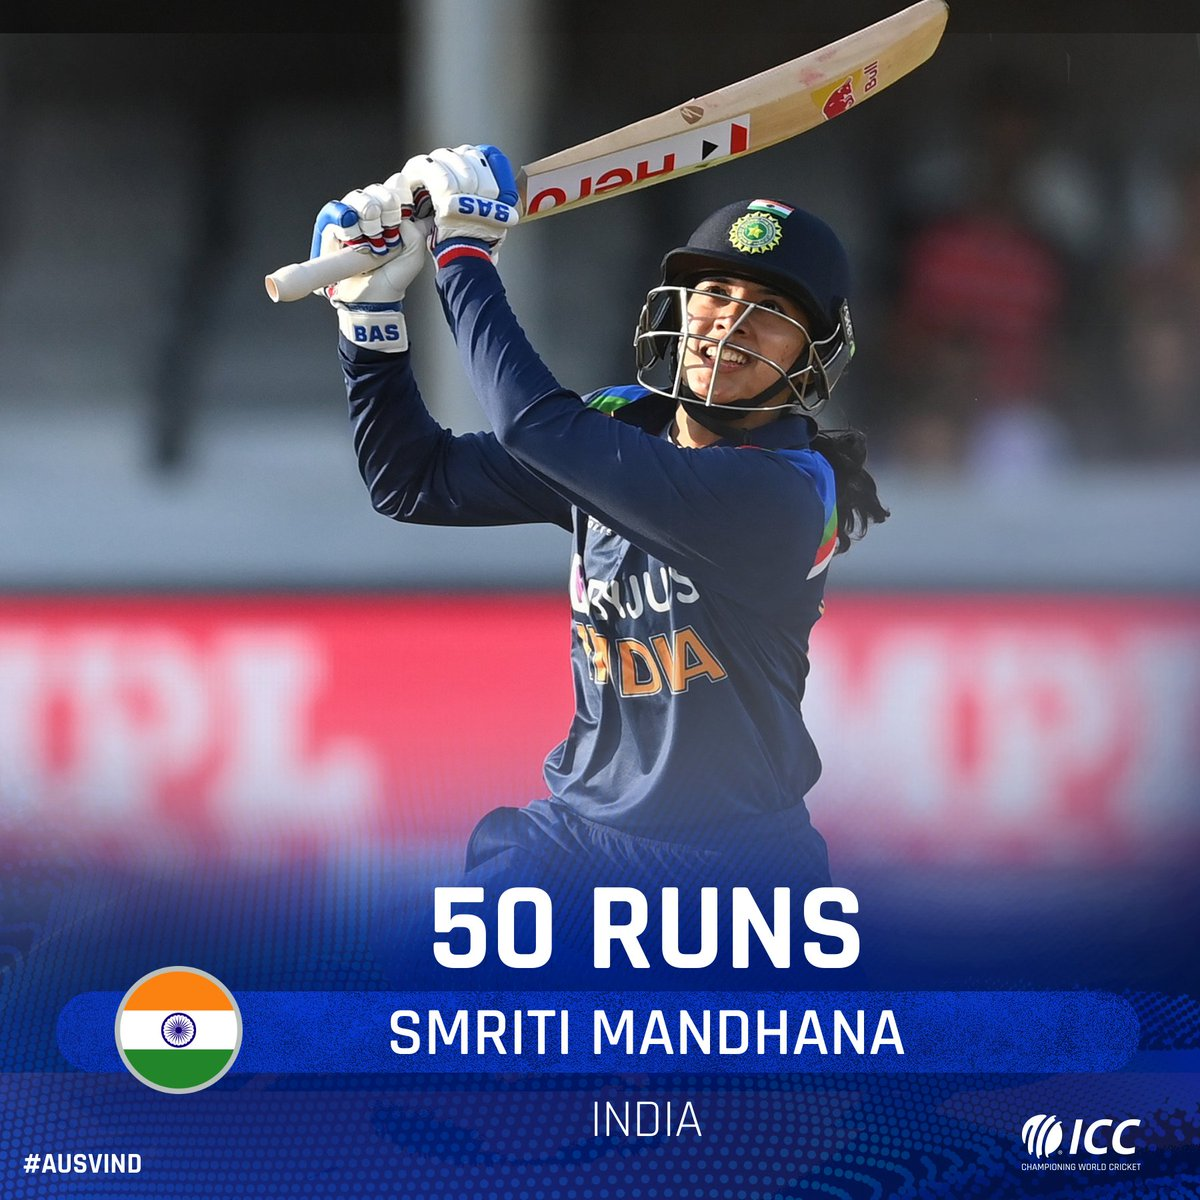 19th ODI fifty for Smriti Mandhana 👏  Can she convert it into triple figures?  📺 Watch the action on  (select regions) 🧮 Follow live:  | #AUSvIND